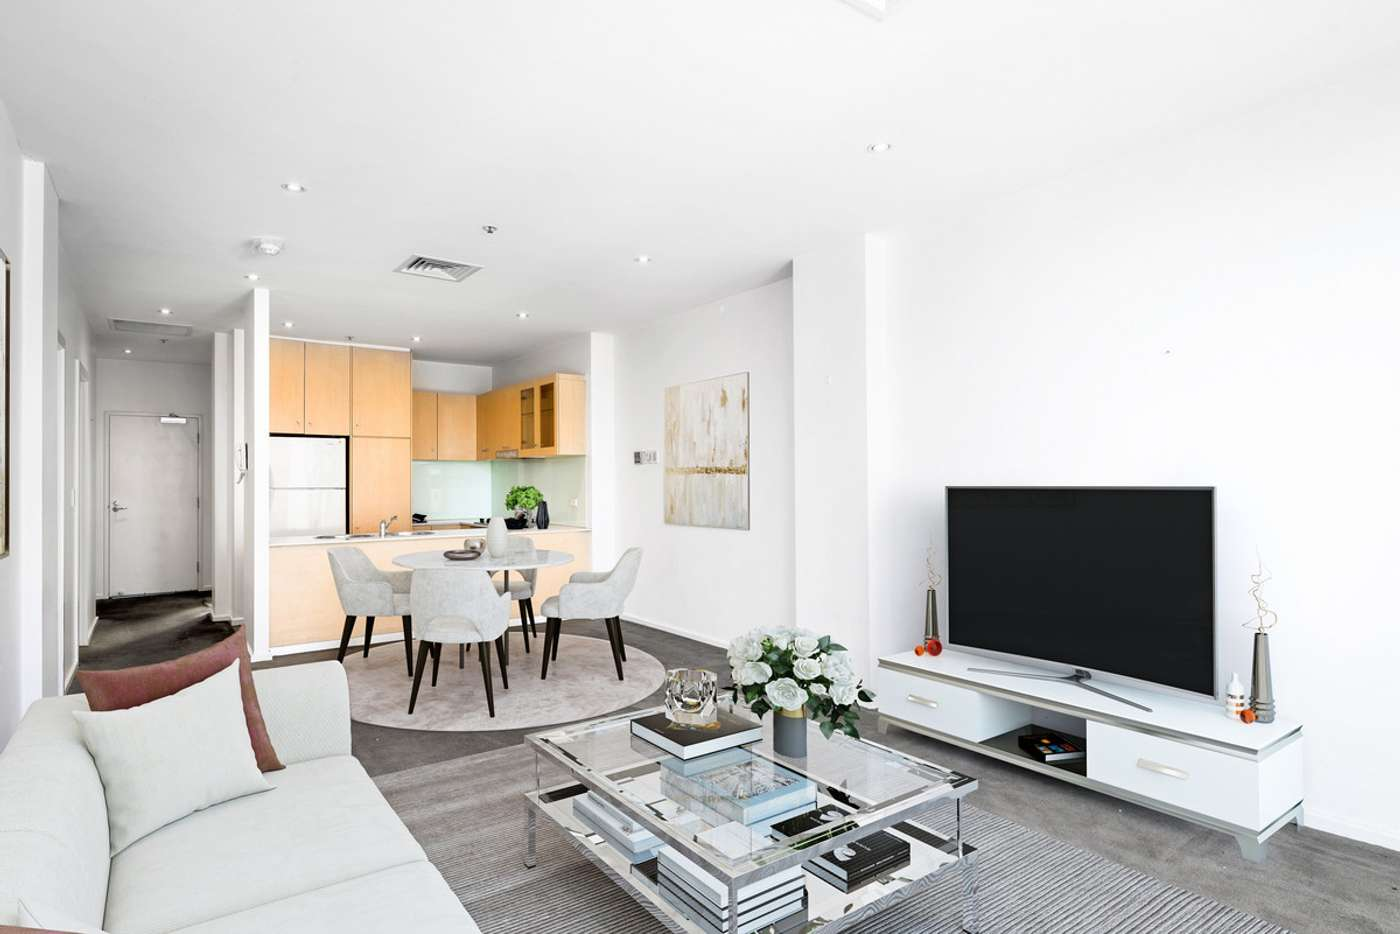 Main view of Homely apartment listing, 96/45 York Street, Adelaide SA 5000